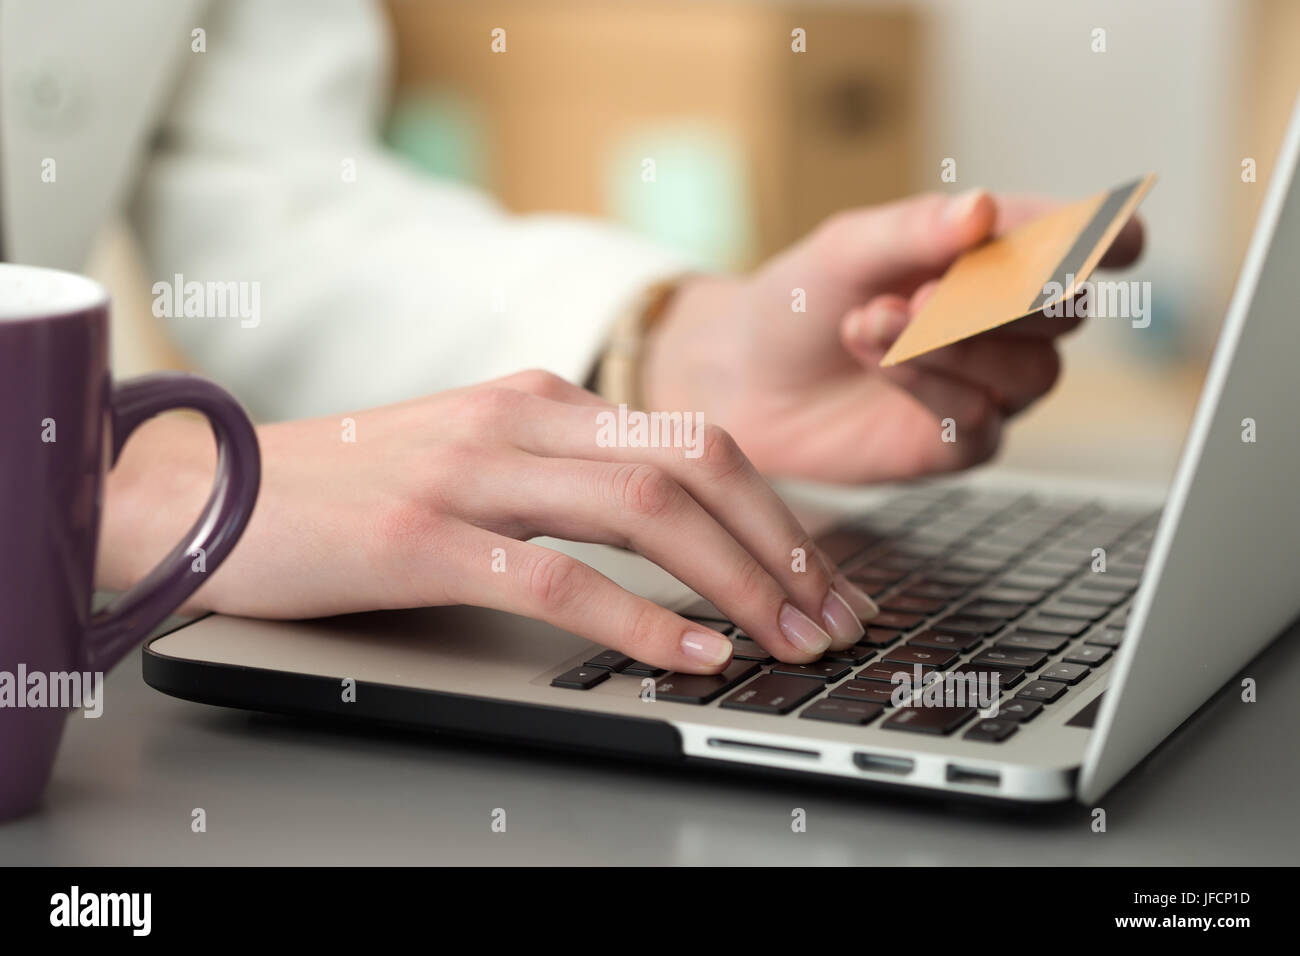 Close up view of businesswoman hands holding credit card and making online purchase using notebook pc. Shopping, - Stock Image